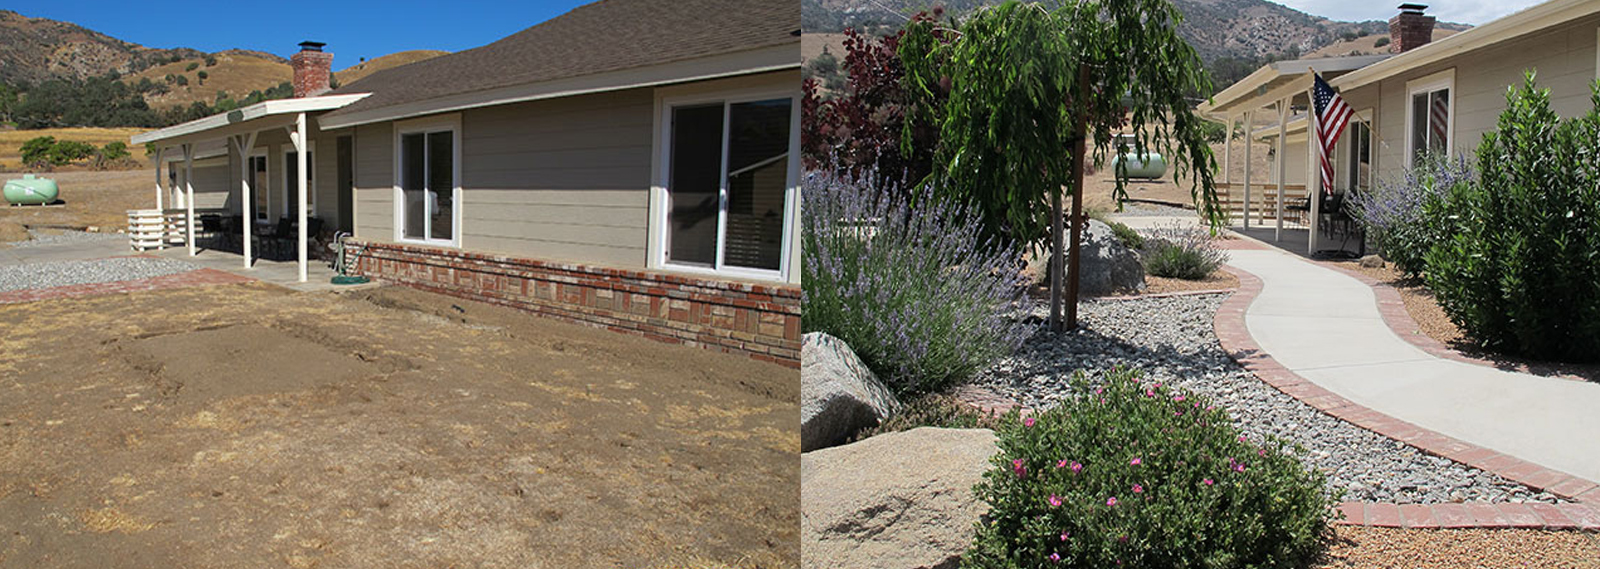 oak knolls landscape before and after